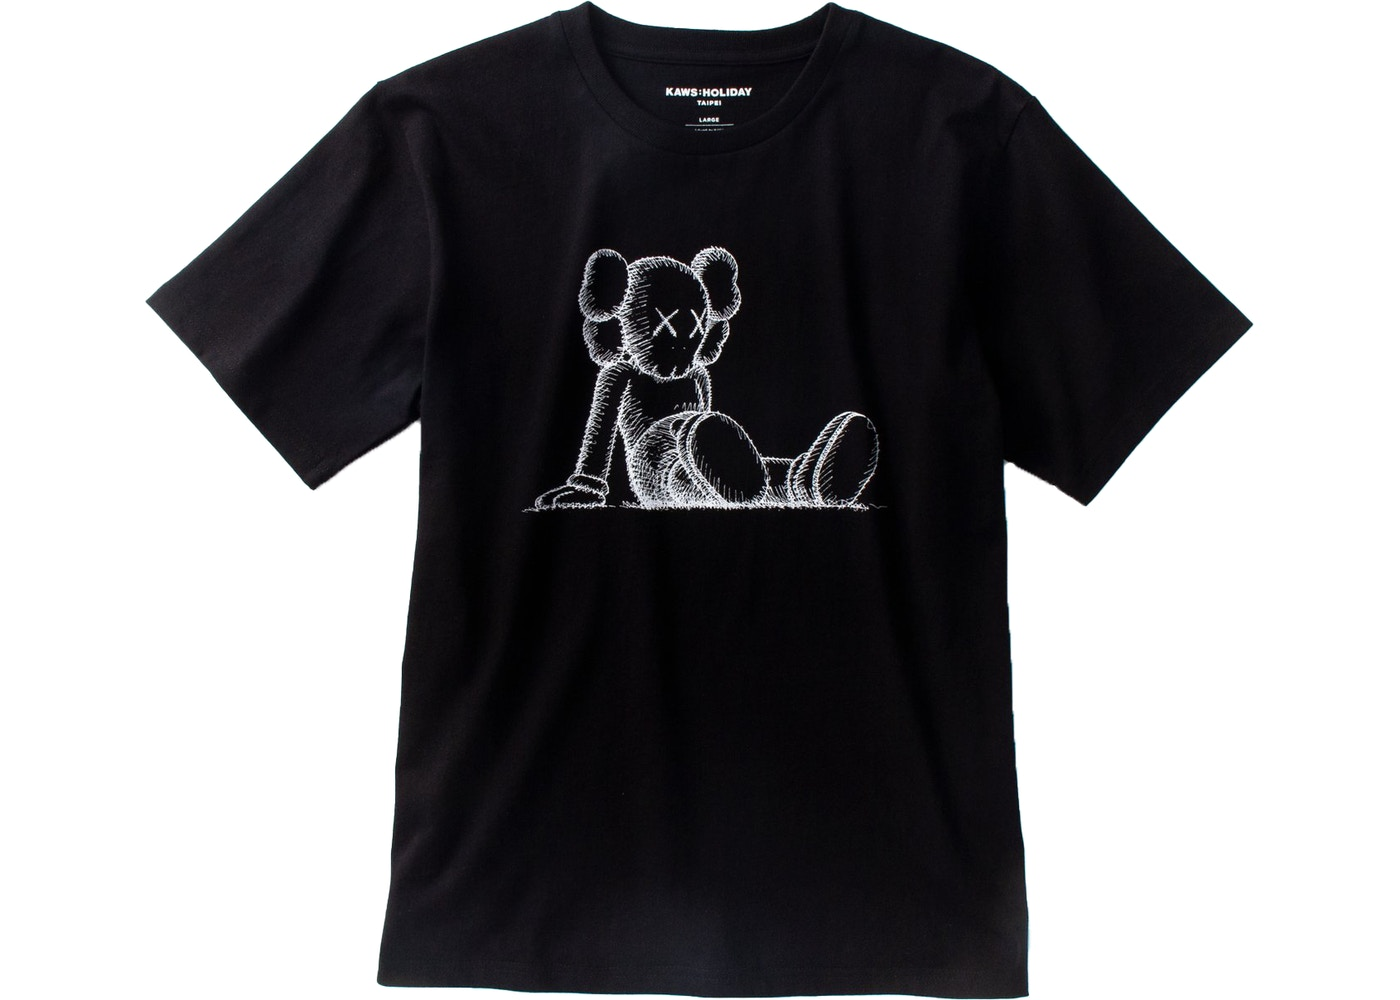 67ca062b5 Sell. or Ask. Size L. View All Bids. KAWS Holiday Limited Companion T-Shirt  Black